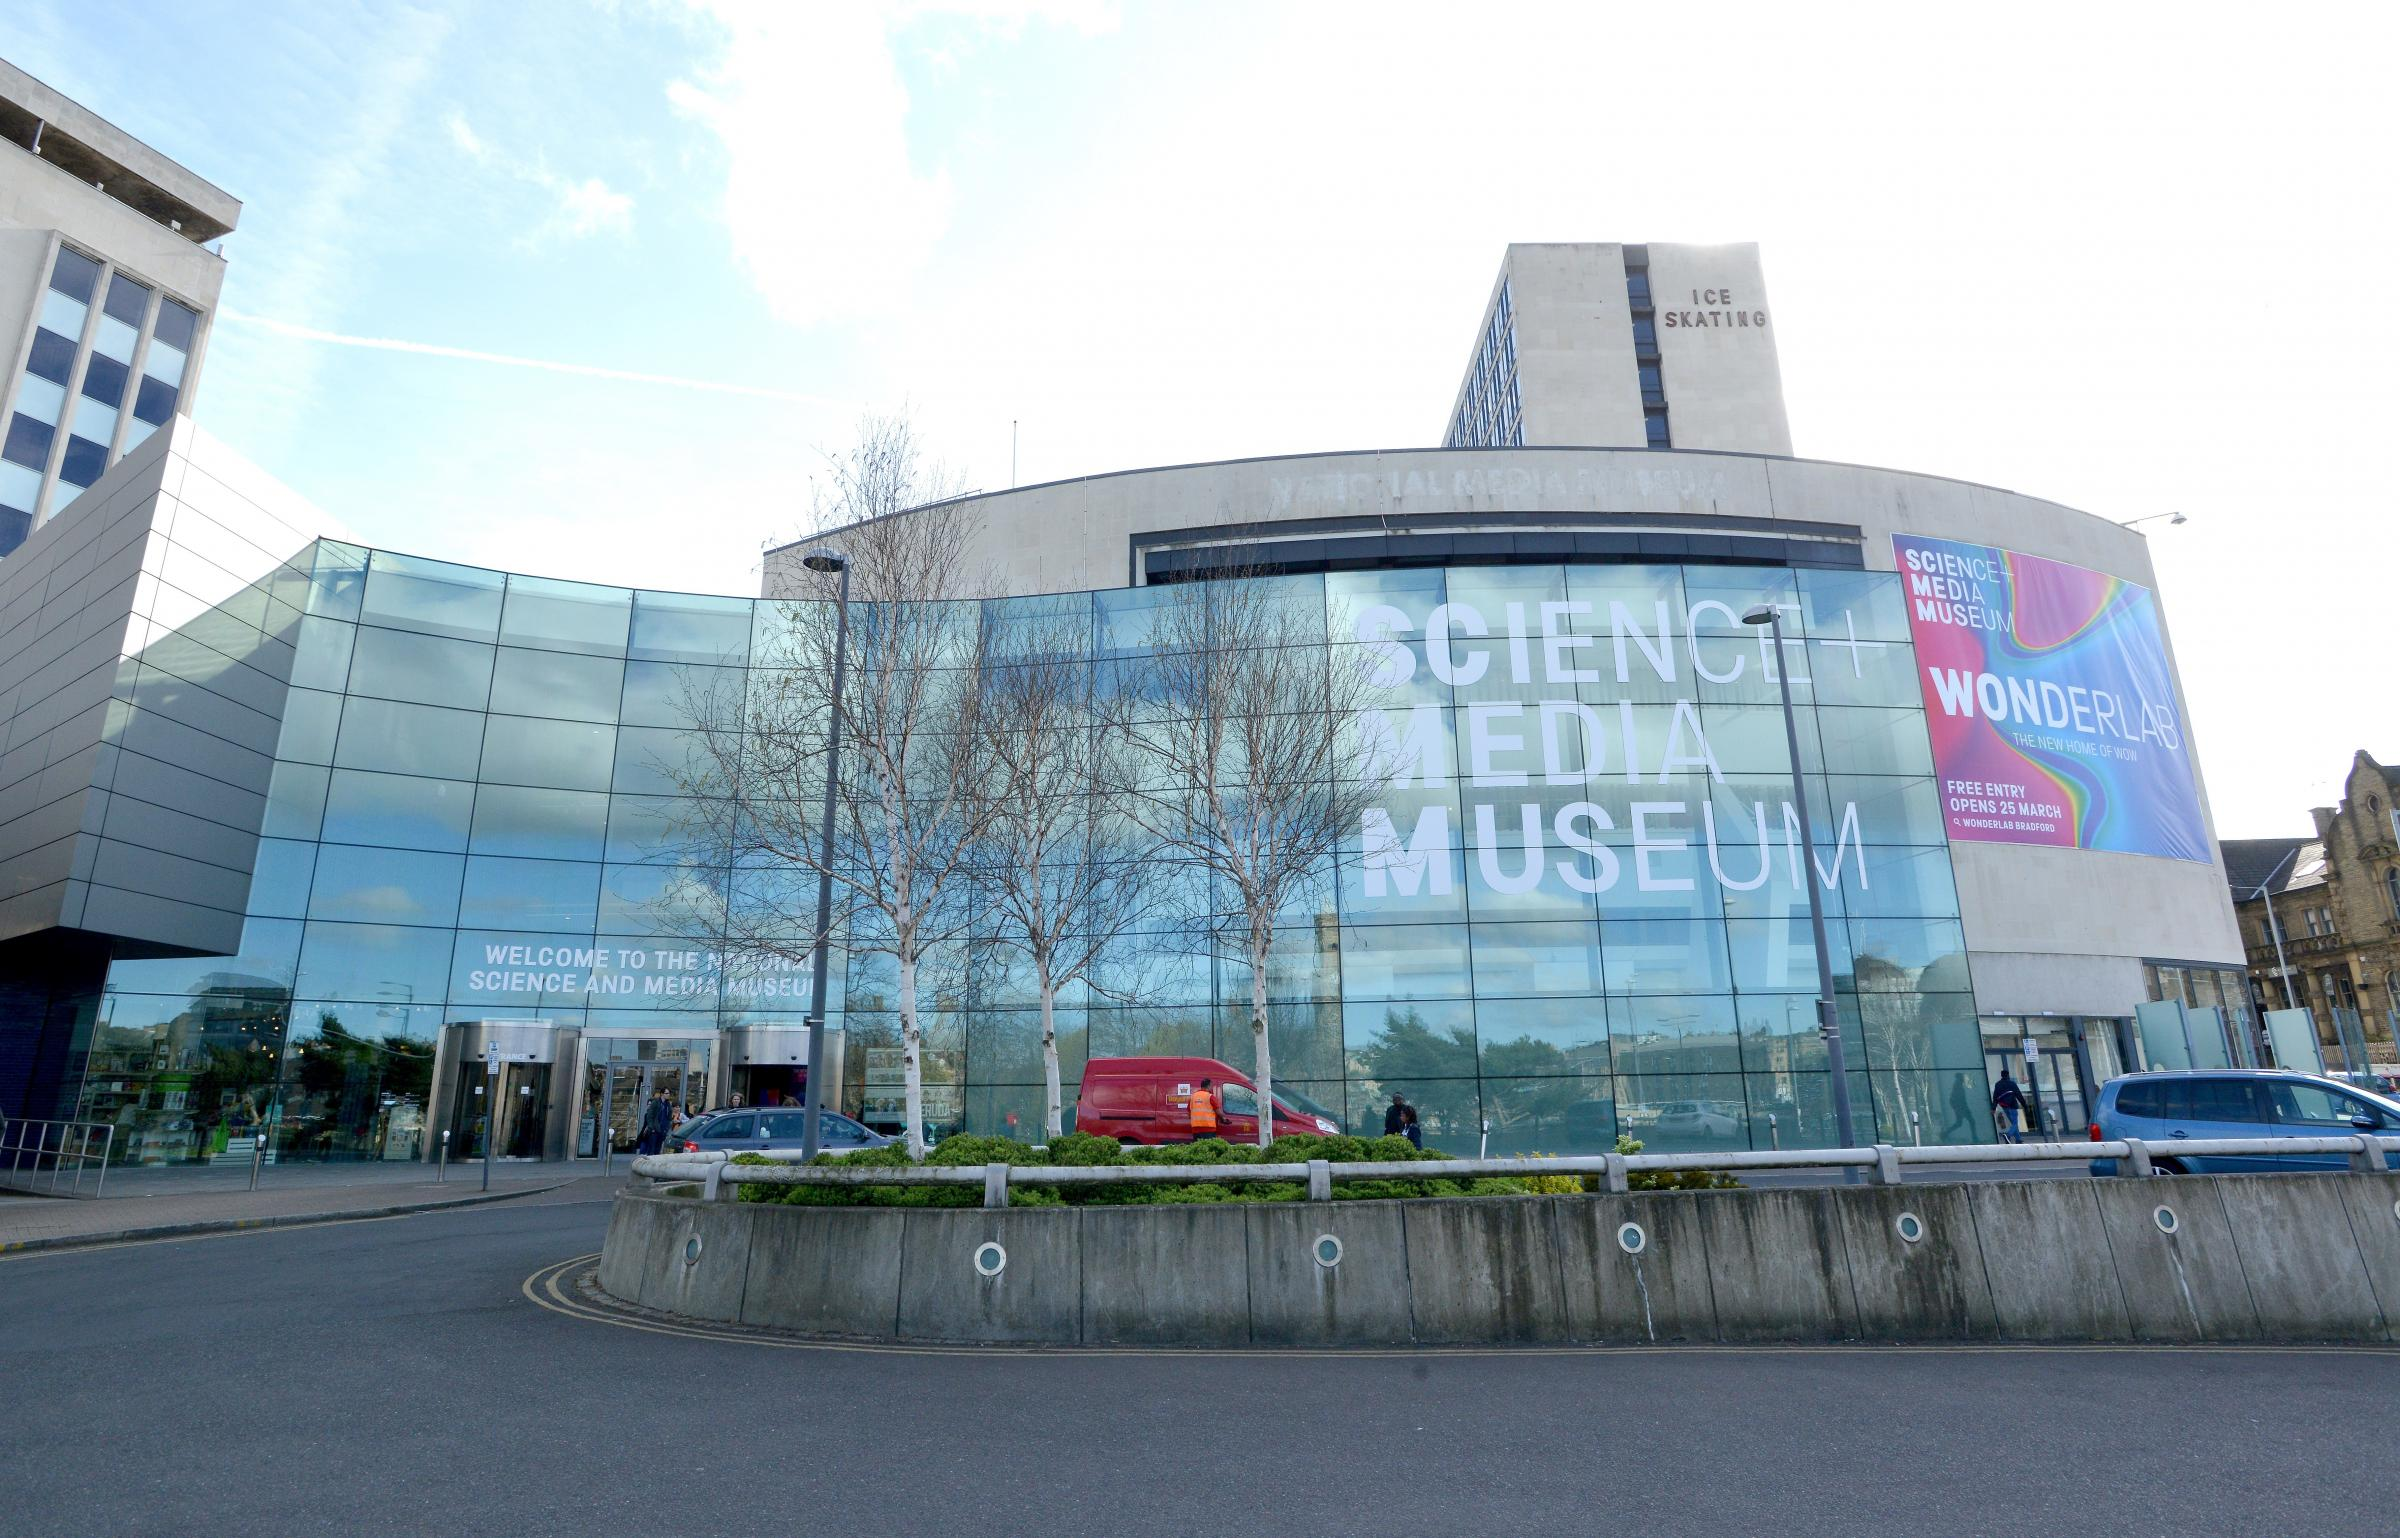 National Science & Media Museum workers to vote on strike action